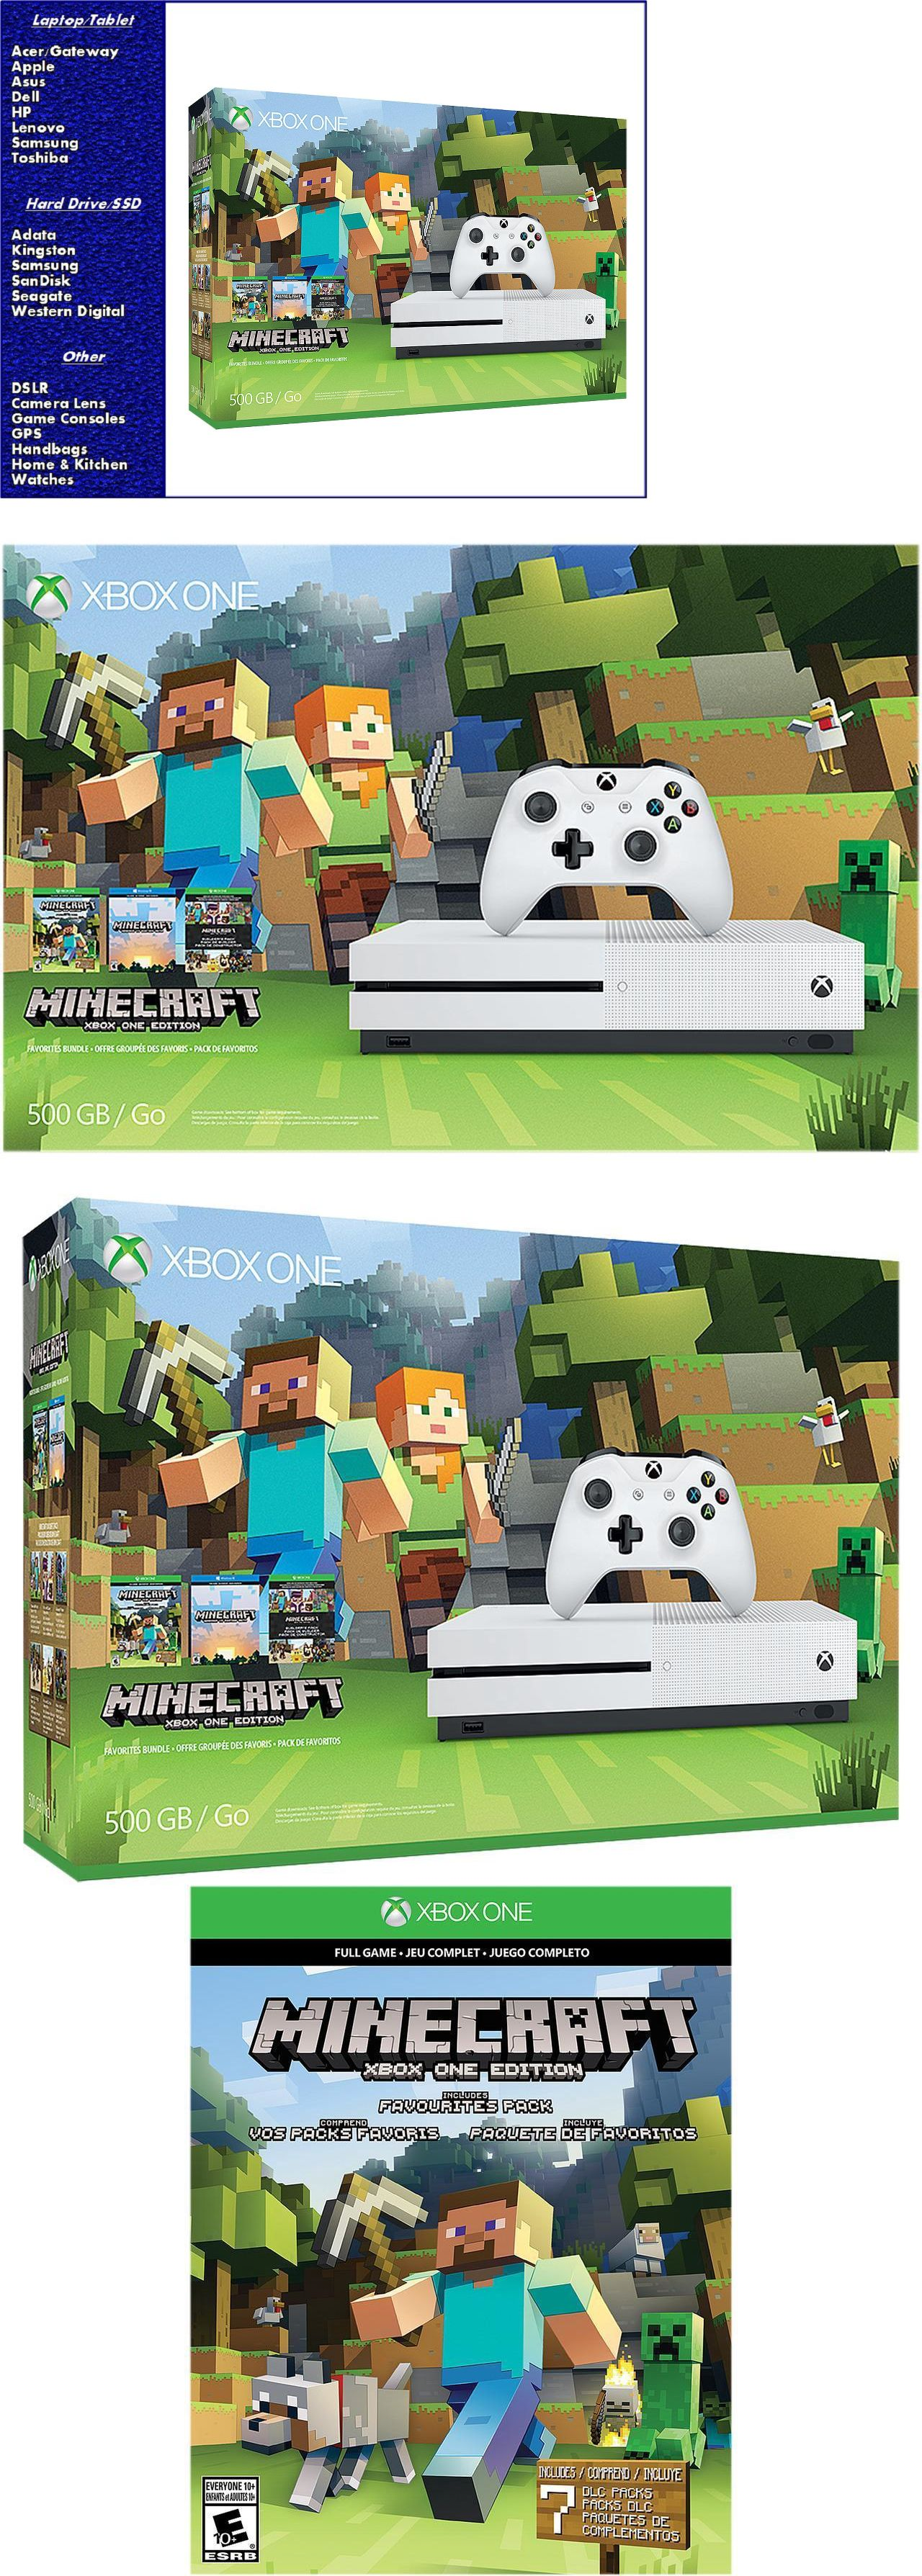 Video Gaming Microsoft Xbox One S 500gb Console Minecraft Sony Ps4 Slim 2006 500 Gb Game Fifa 17 Favorites Bundle New And